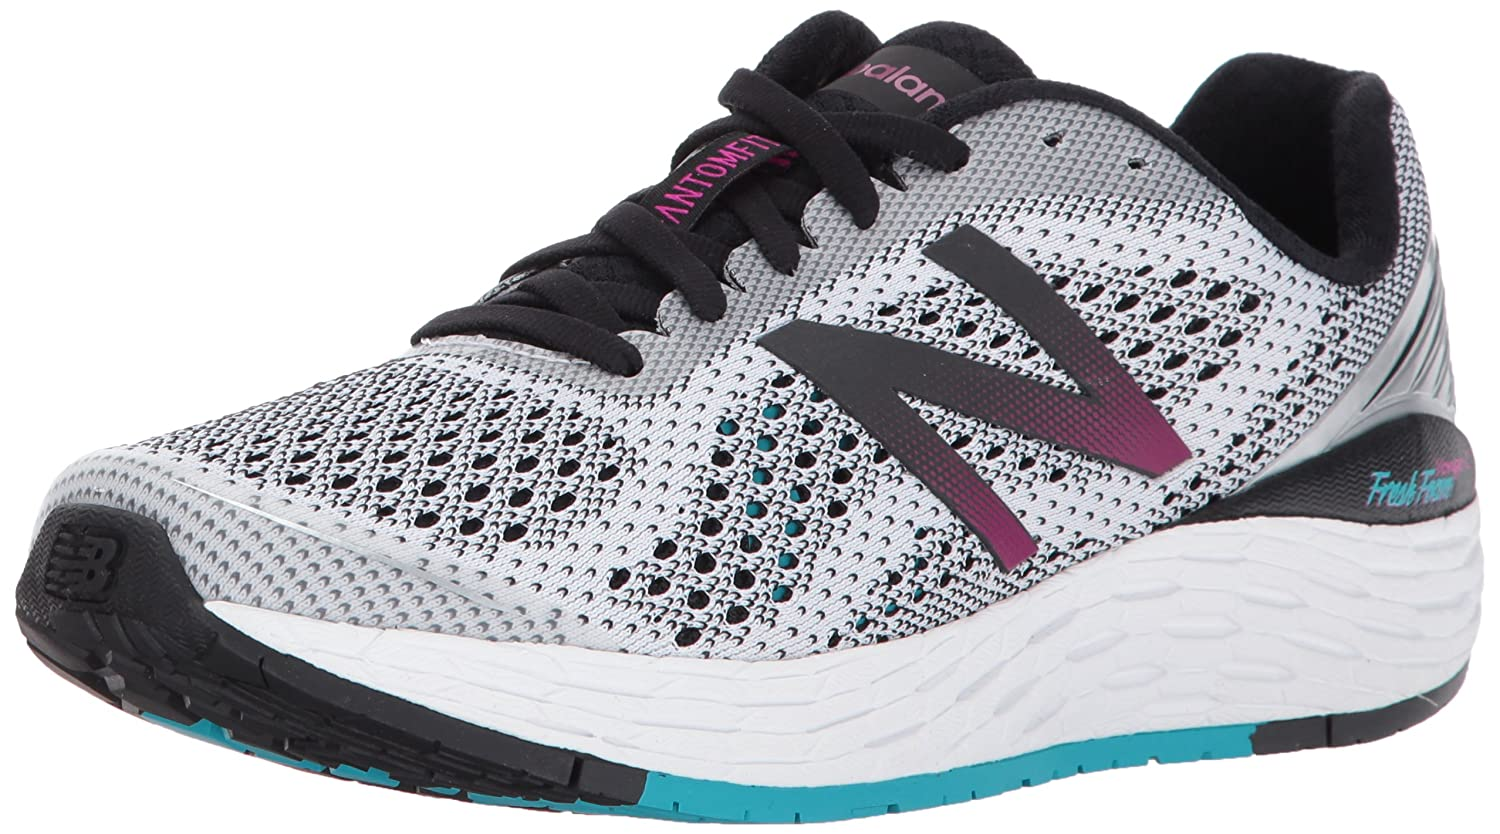 New Balance Women's VONGOV2 Running-Shoes B01MRN3UPO 8 B(M) US|White/Pisces